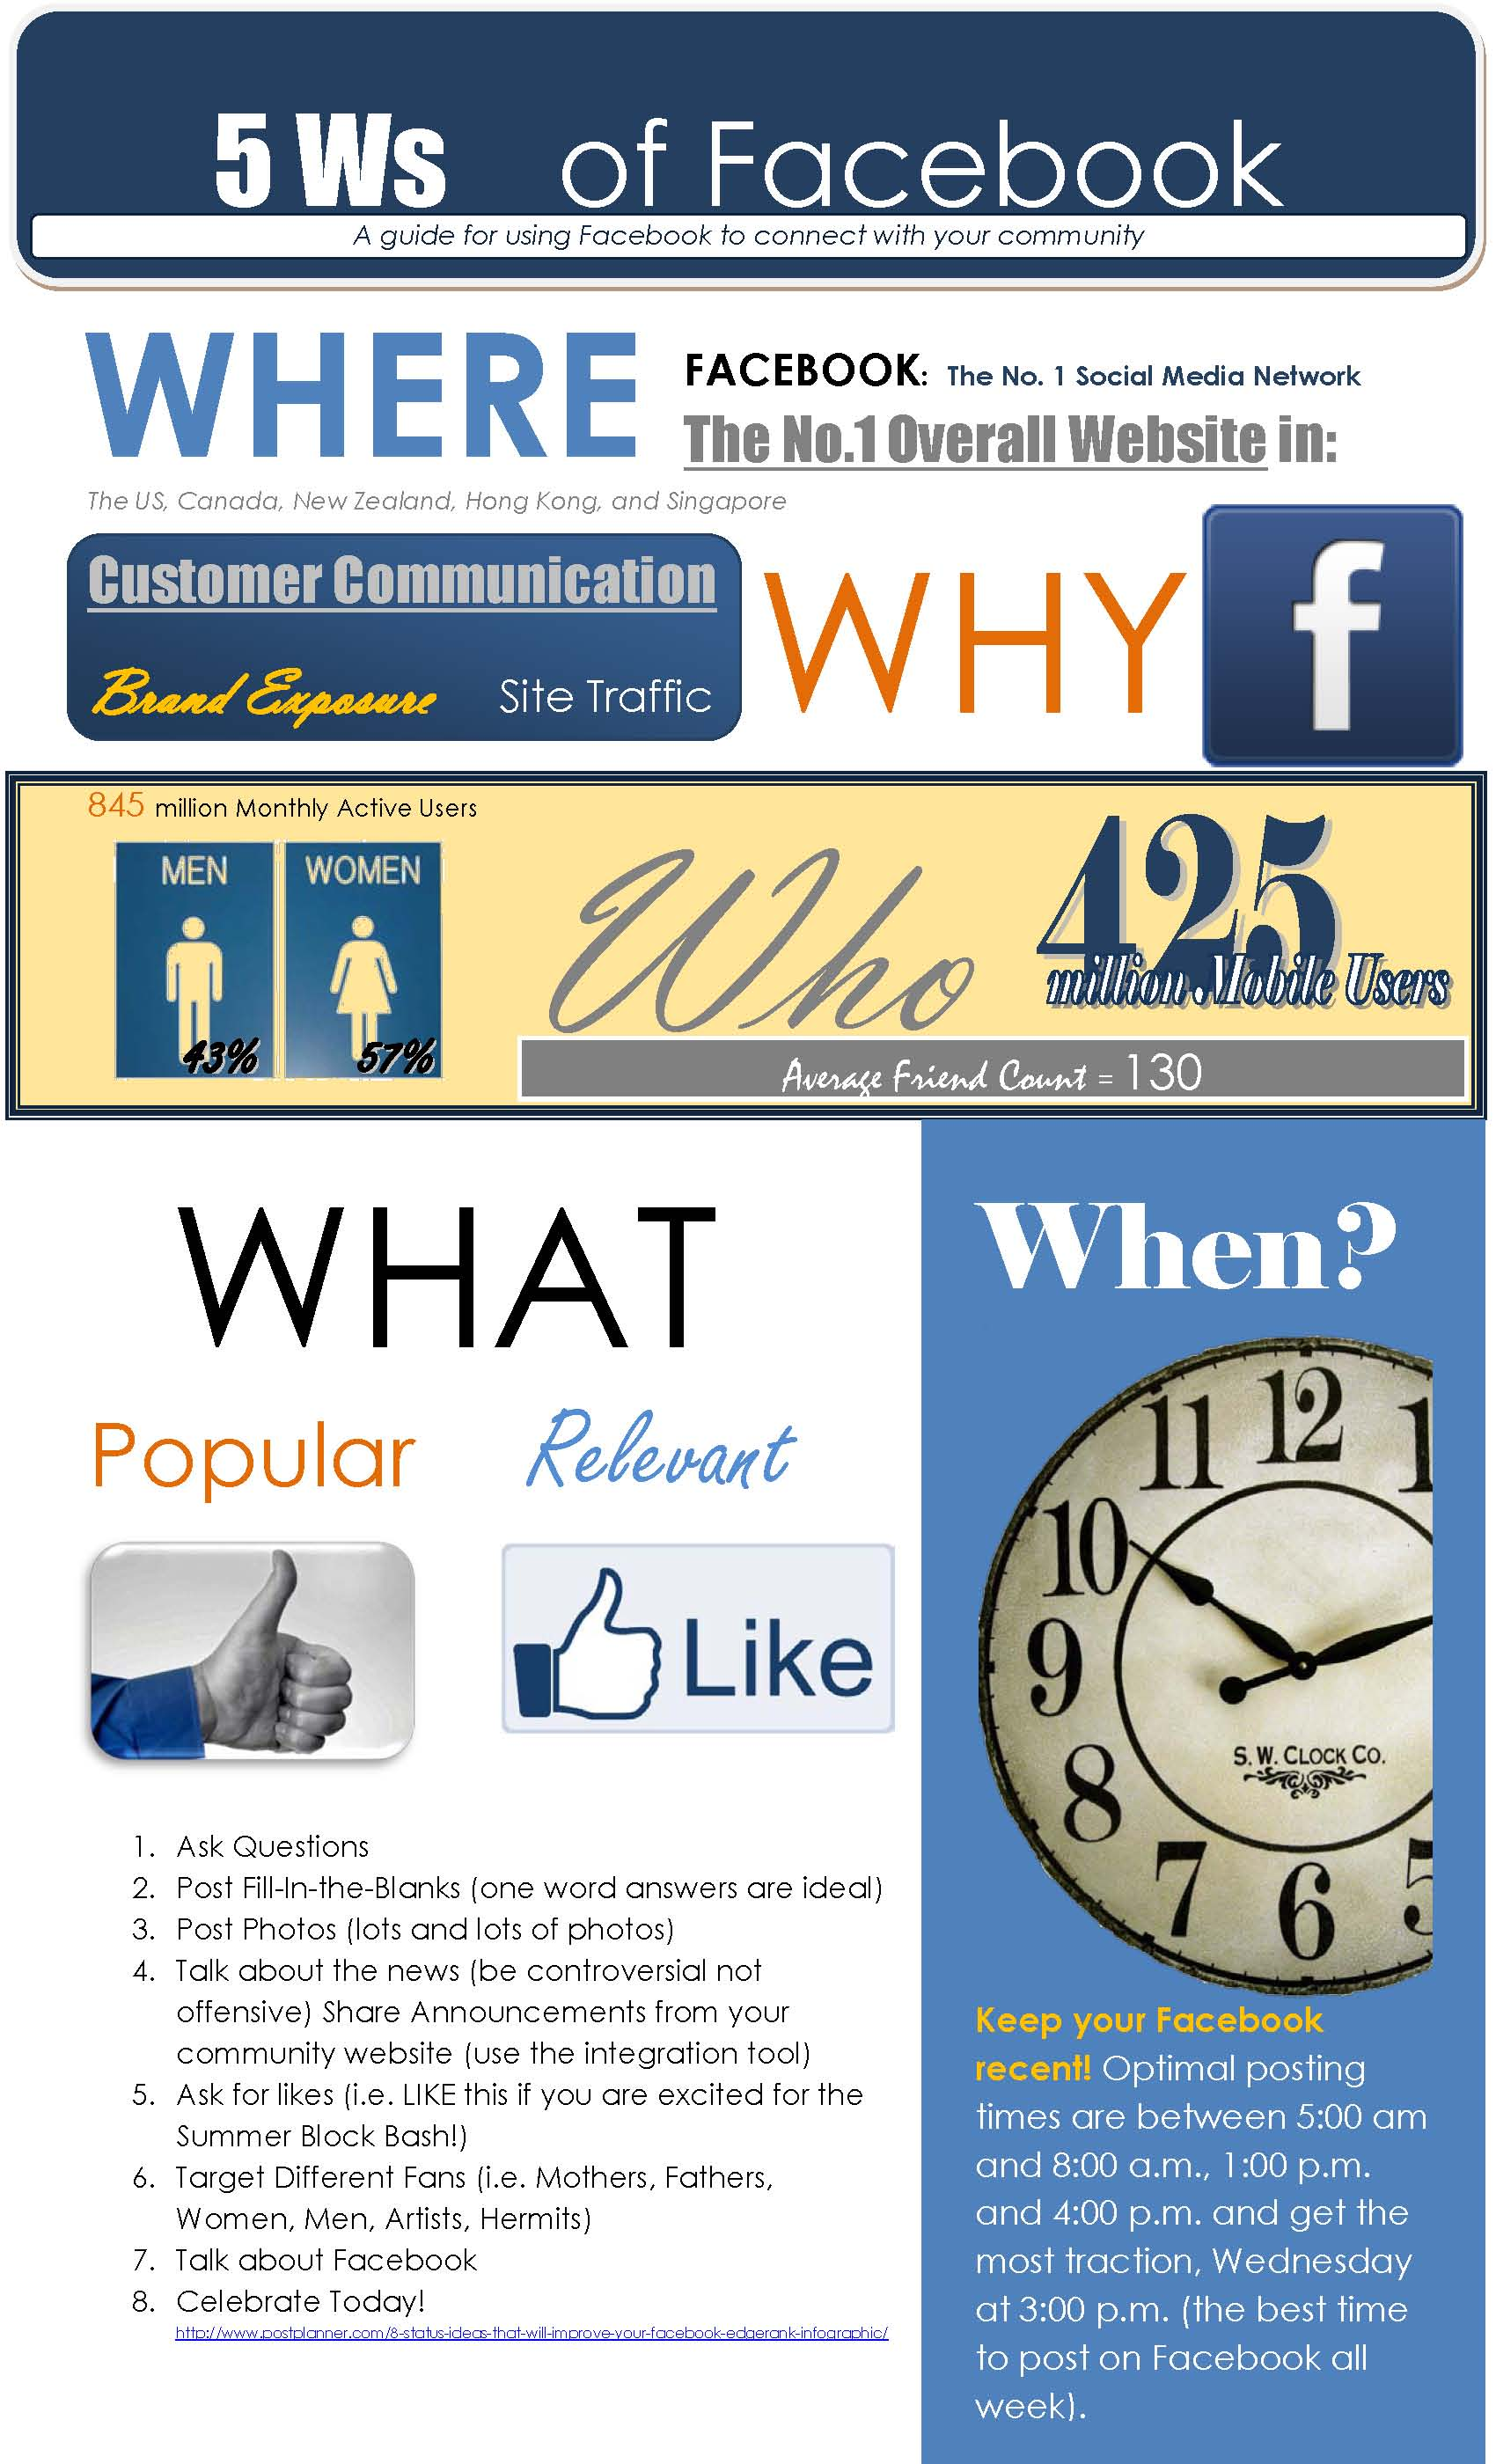 The 5 Ws of Facebook